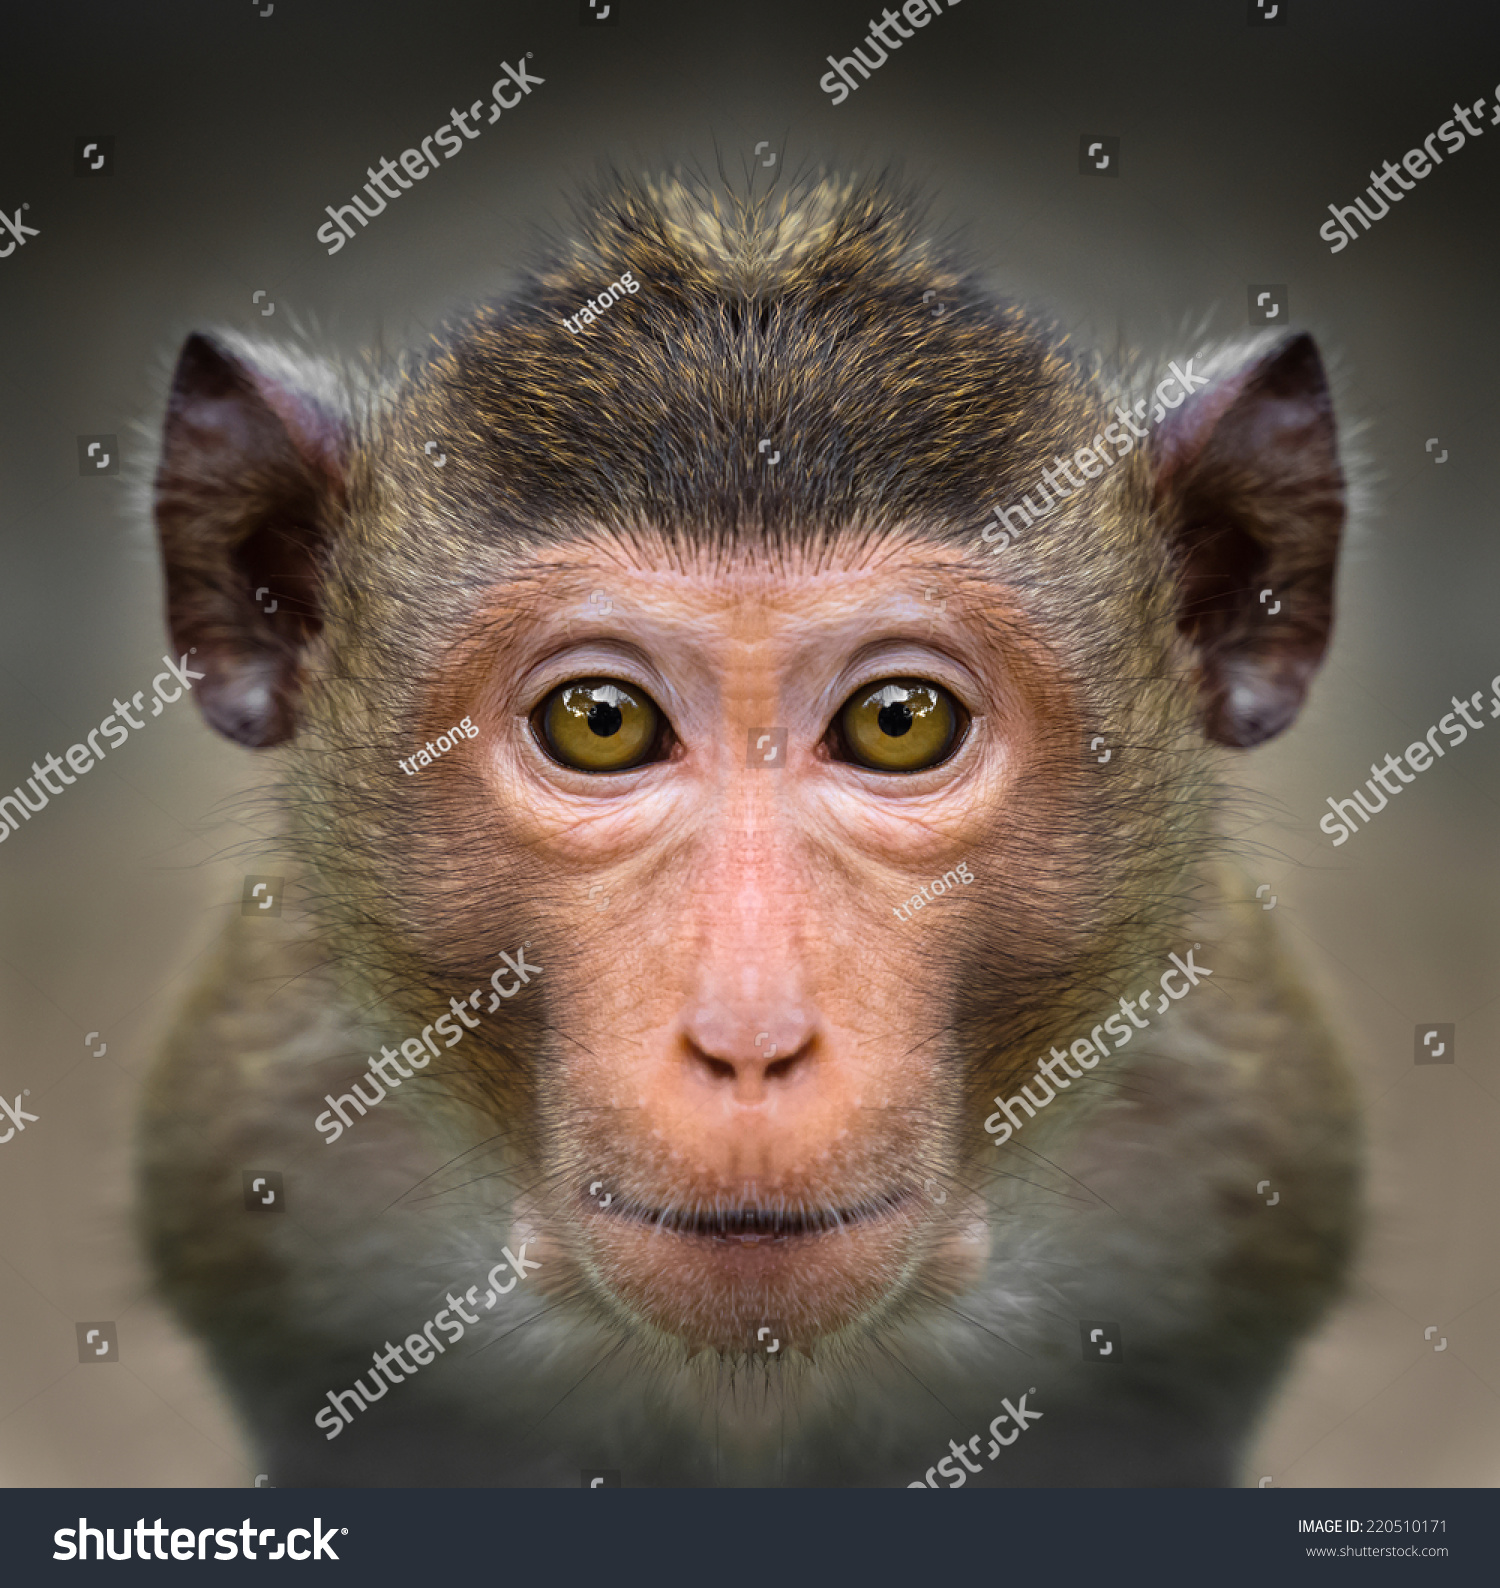 Monkey Face Close Stock Photo (Royalty Free) 220510171 - Shutterstock